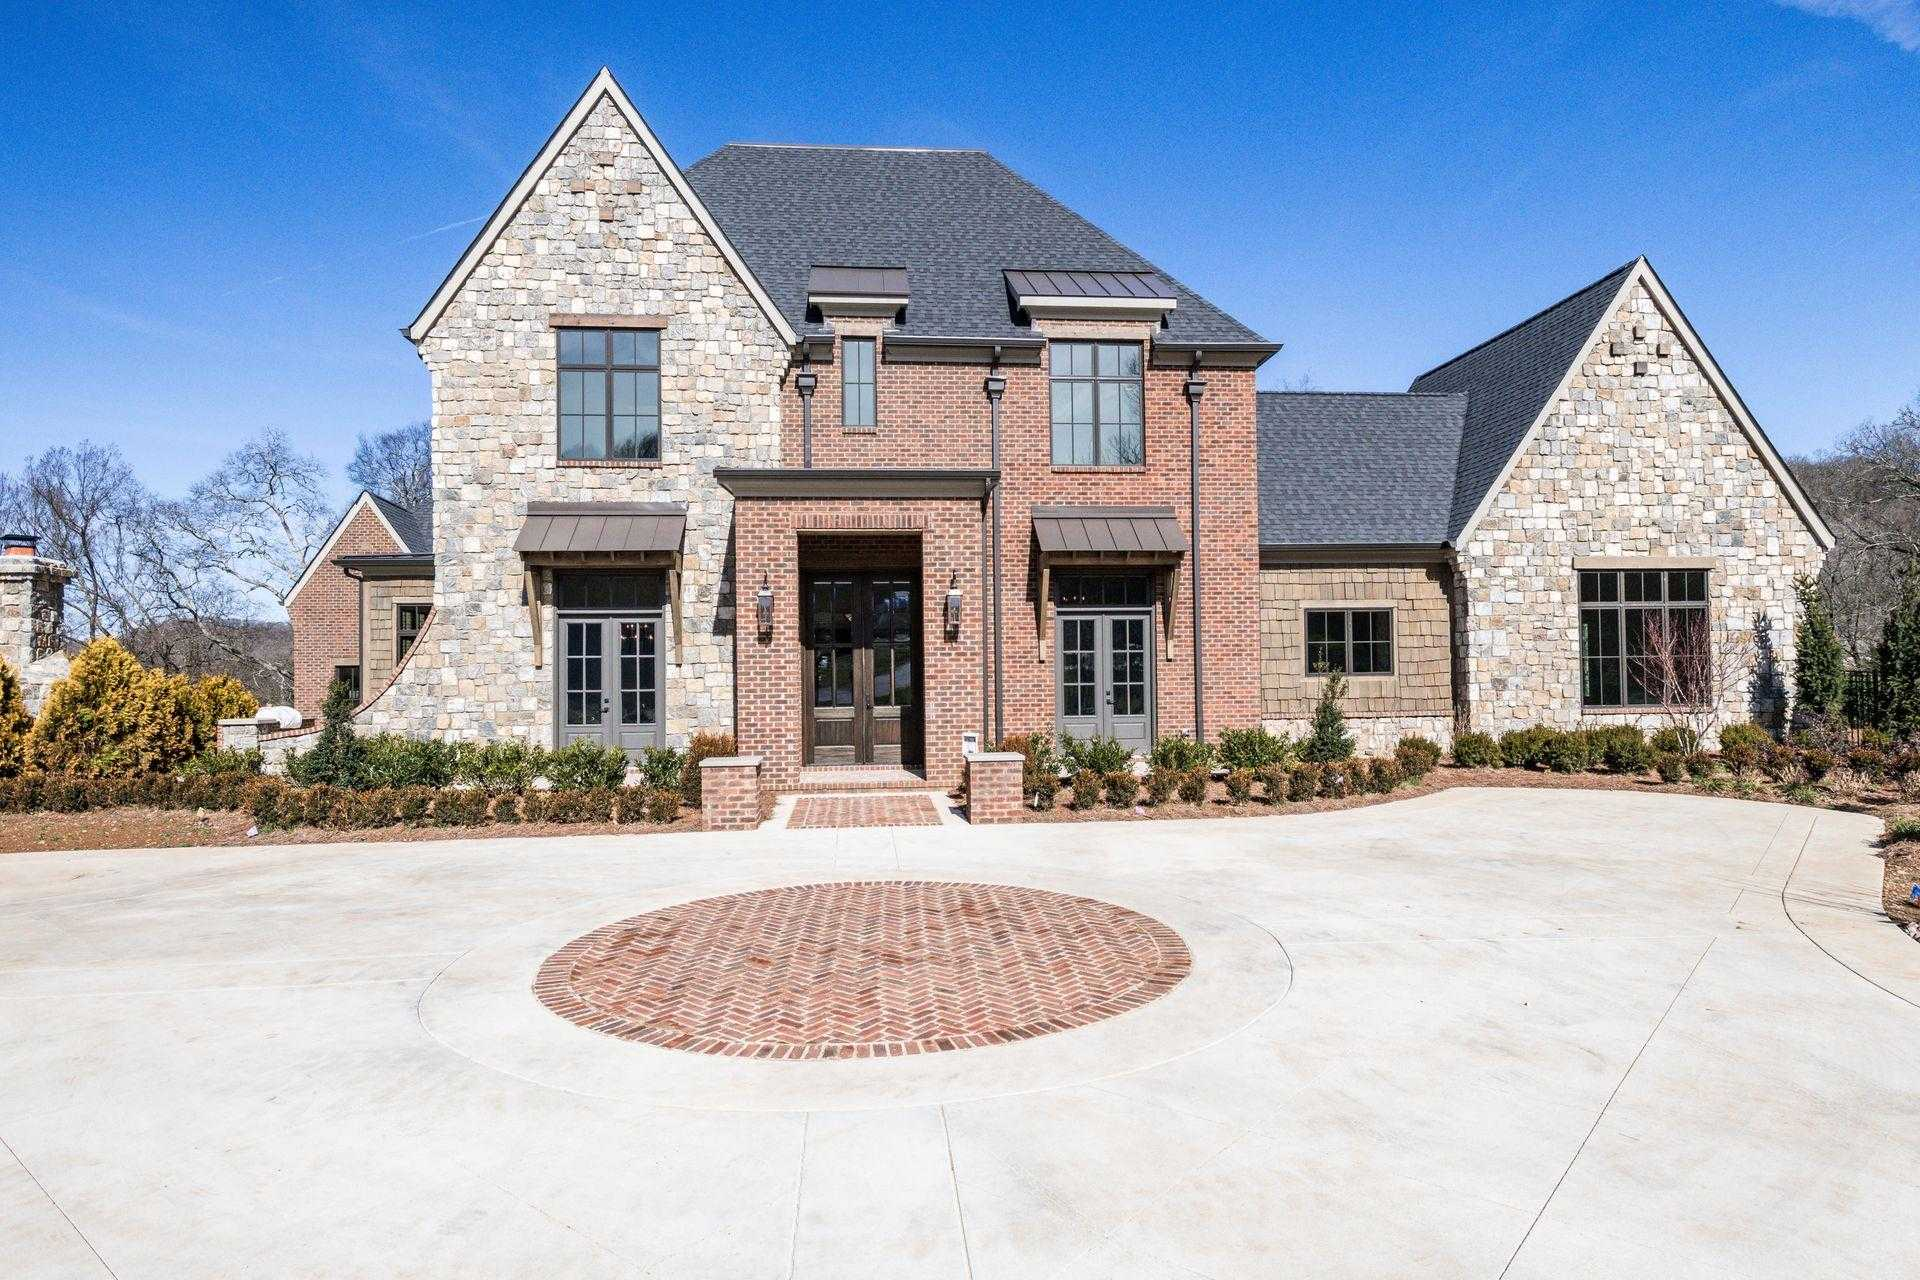 $2,849,900 - 5Br/8Ba -  for Sale in Cartwright Close, Brentwood